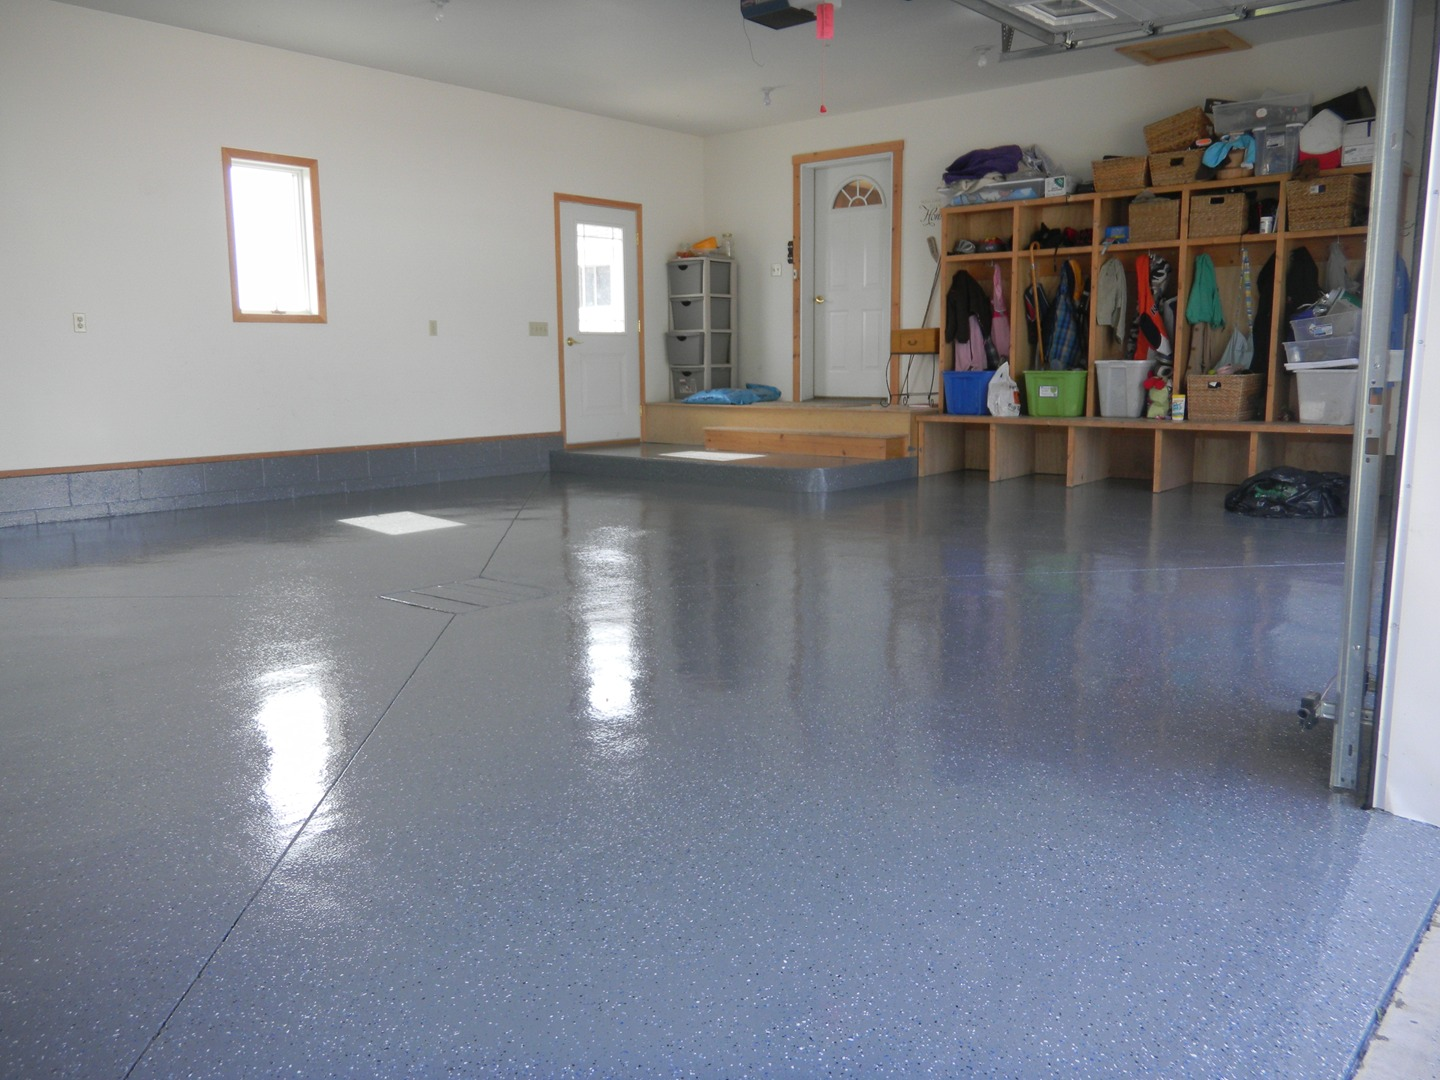 Mayo's Kustom Garage Floors Etc Llc - Concrete Floor Coatings, Epoxy on garage flooring, exterior coatings, industrial coatings, concrete coatings, garage lighting, garage windows, rubberized non-slip coatings, garage storage, protective coatings, garage countertops, roof coatings, garage plumbing, garage concrete repair, garage painting, garage concrete paint, patio coatings, wood deck coatings, garage cabinets, epoxy coatings, water-based polyurethane coatings,